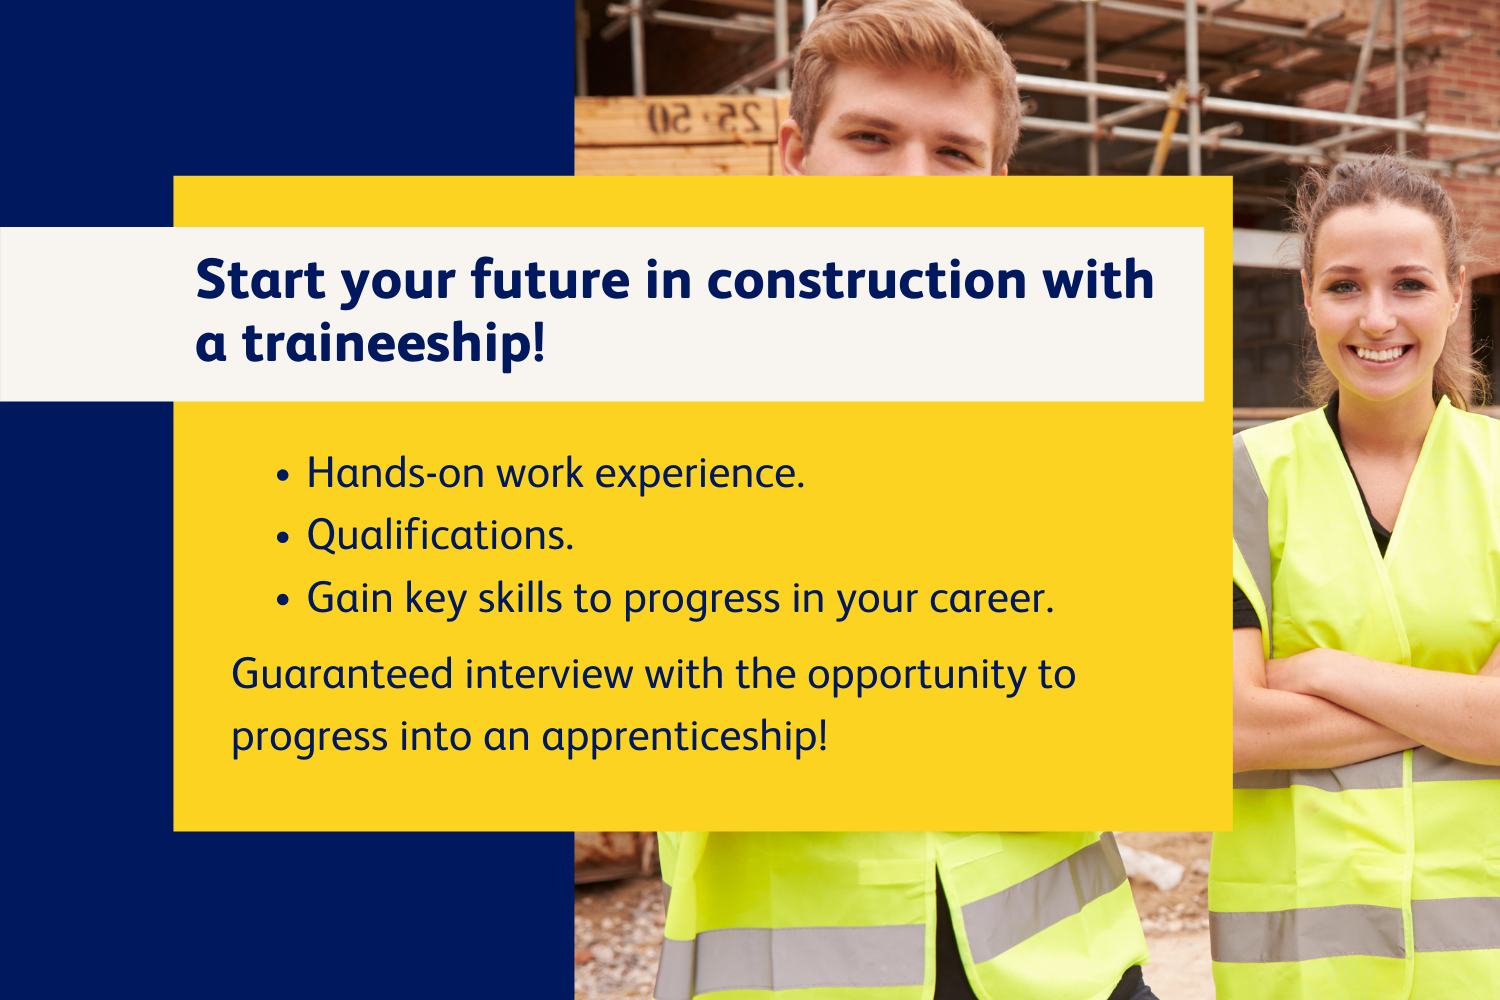 Image of construction trainees with text information